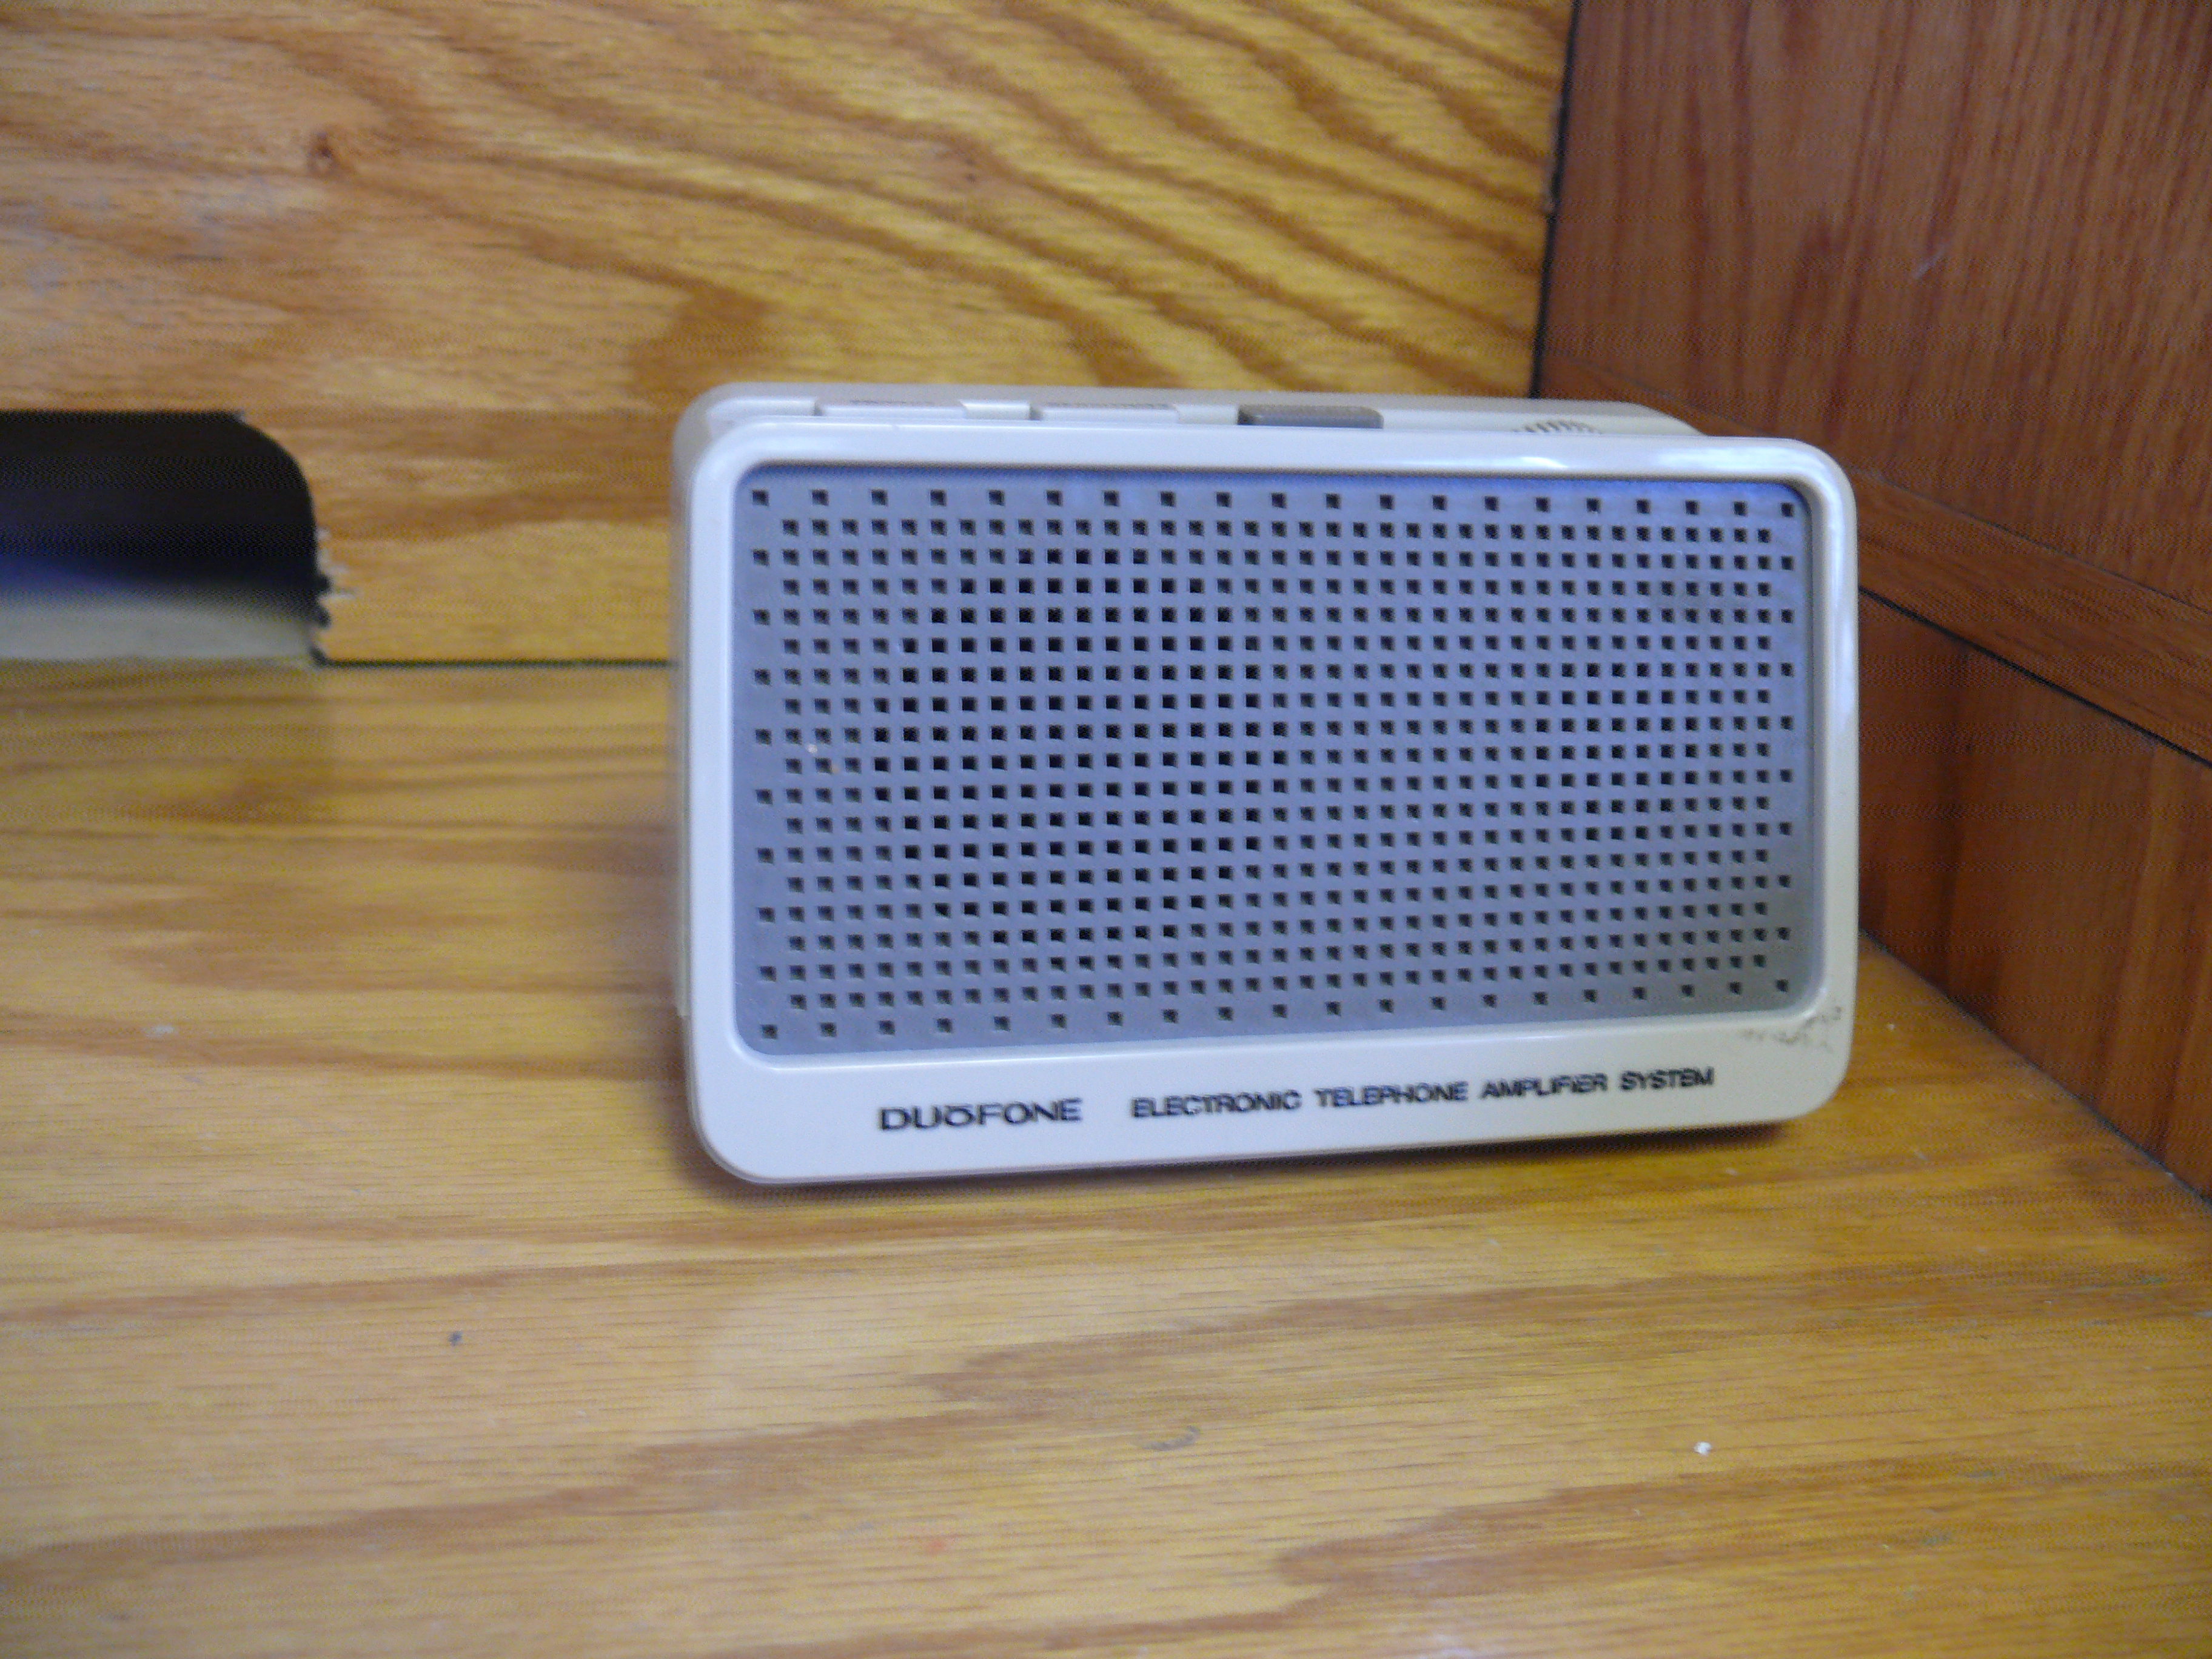 DuoFone Electronic Telephone Amplifier System